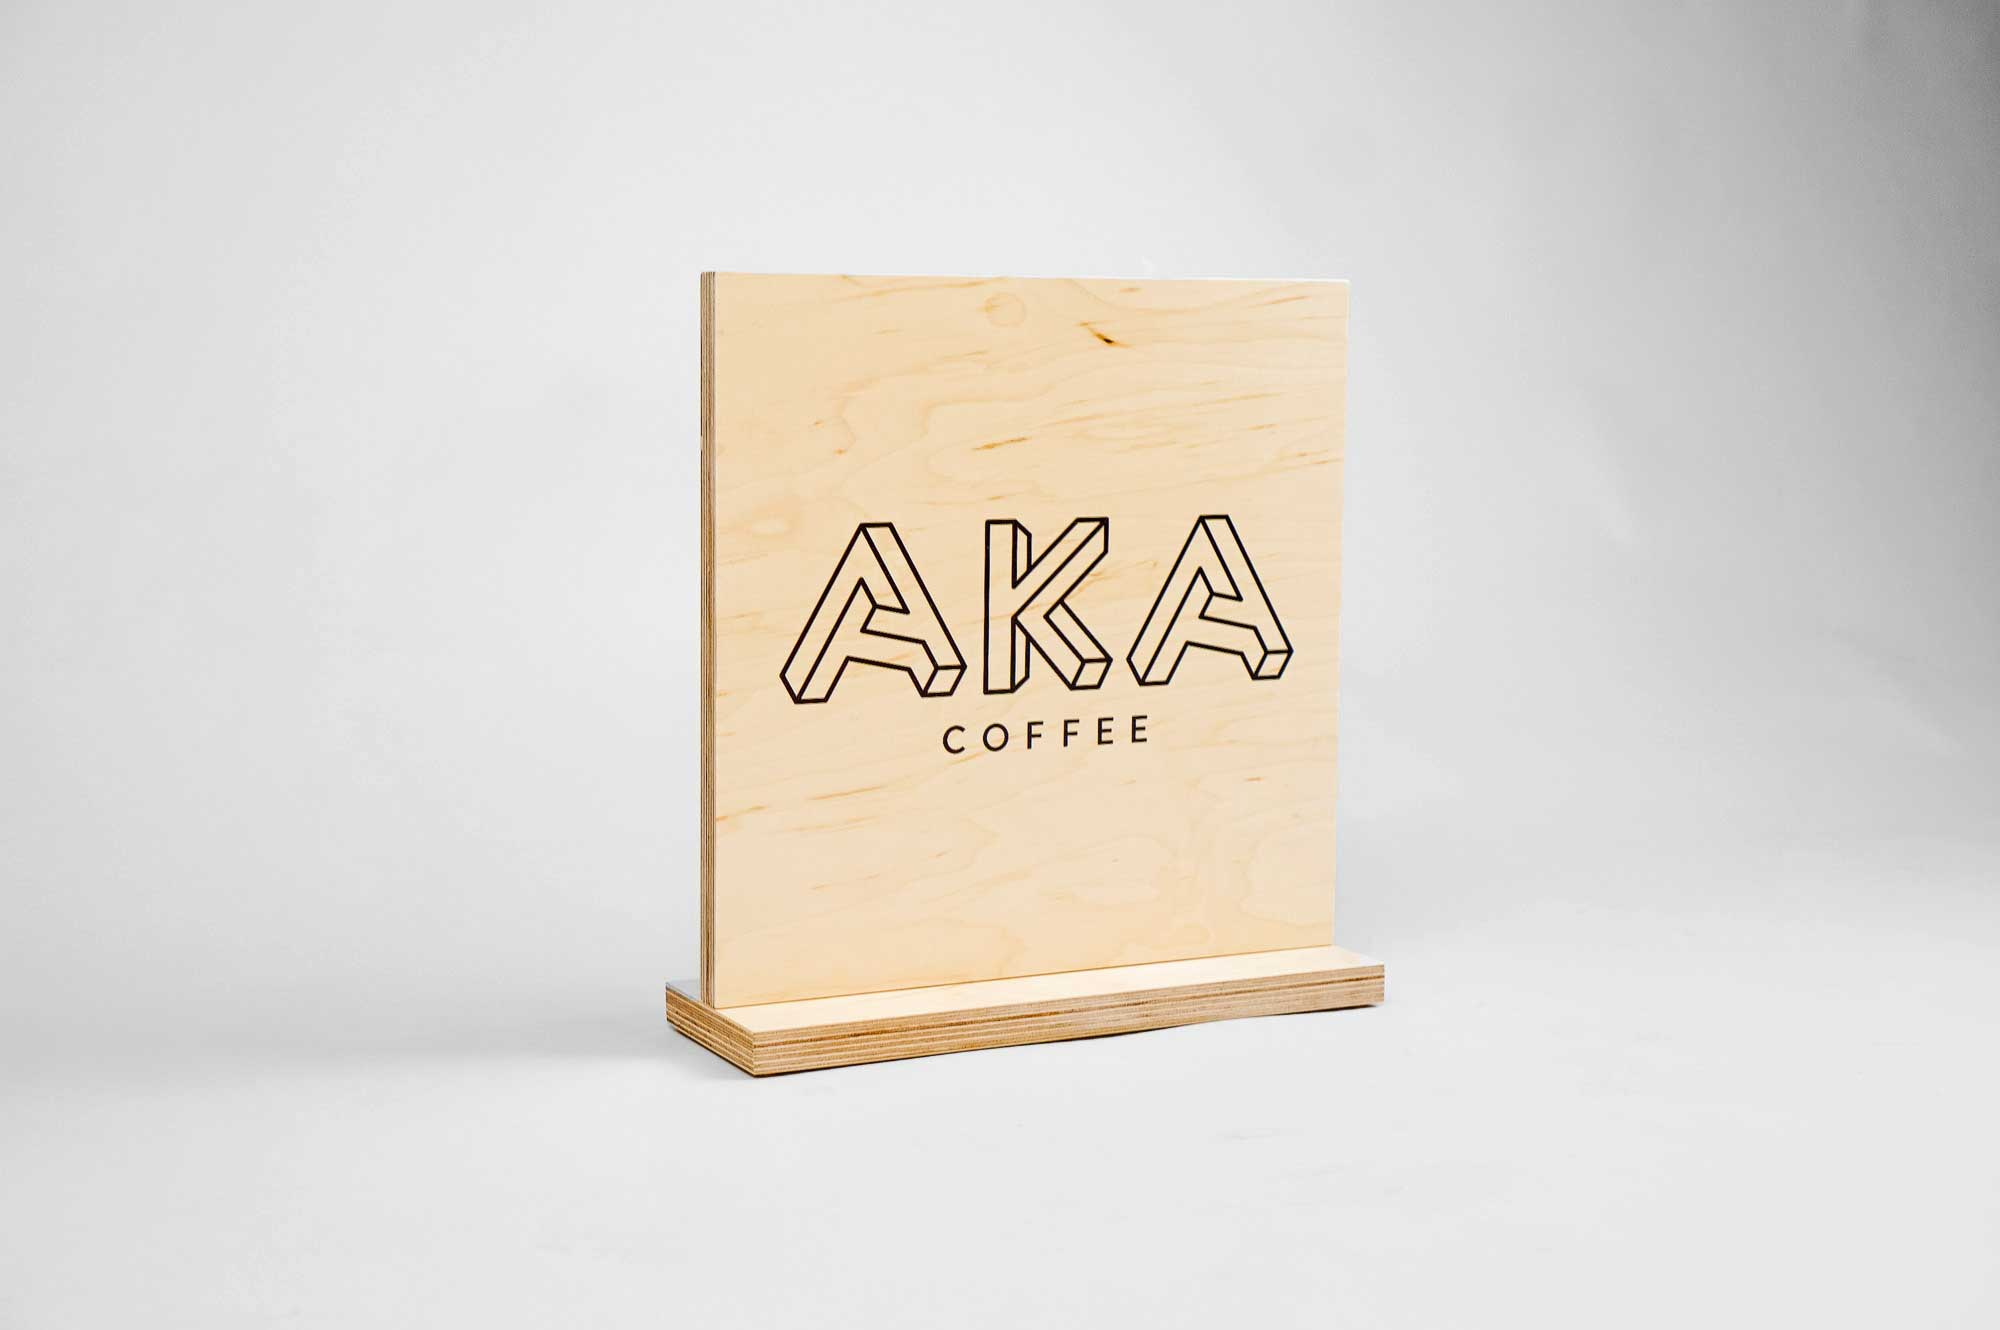 Wood tabletop sign for coffee popup at Square headquarters for AKA coffee, a coffee roastery based out of Oakland, CA.